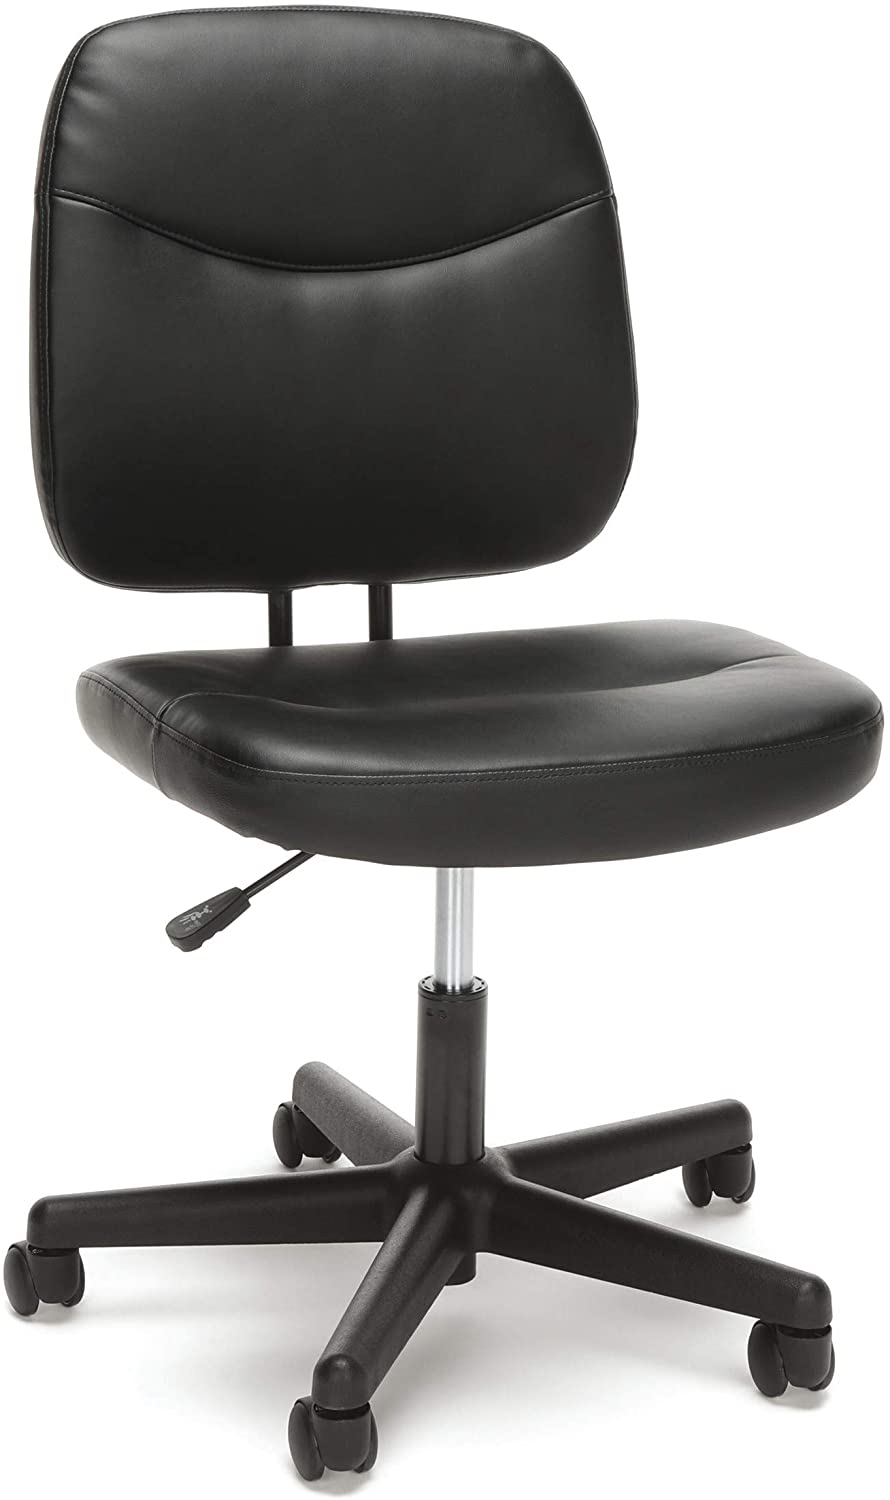 Amazon Com Ofm Essentials Collection Armless Leather Desk Chair In Black Ess 6005 Blk Kitchen Dining Leather Office Chair Leather Desk Office Desk Chair